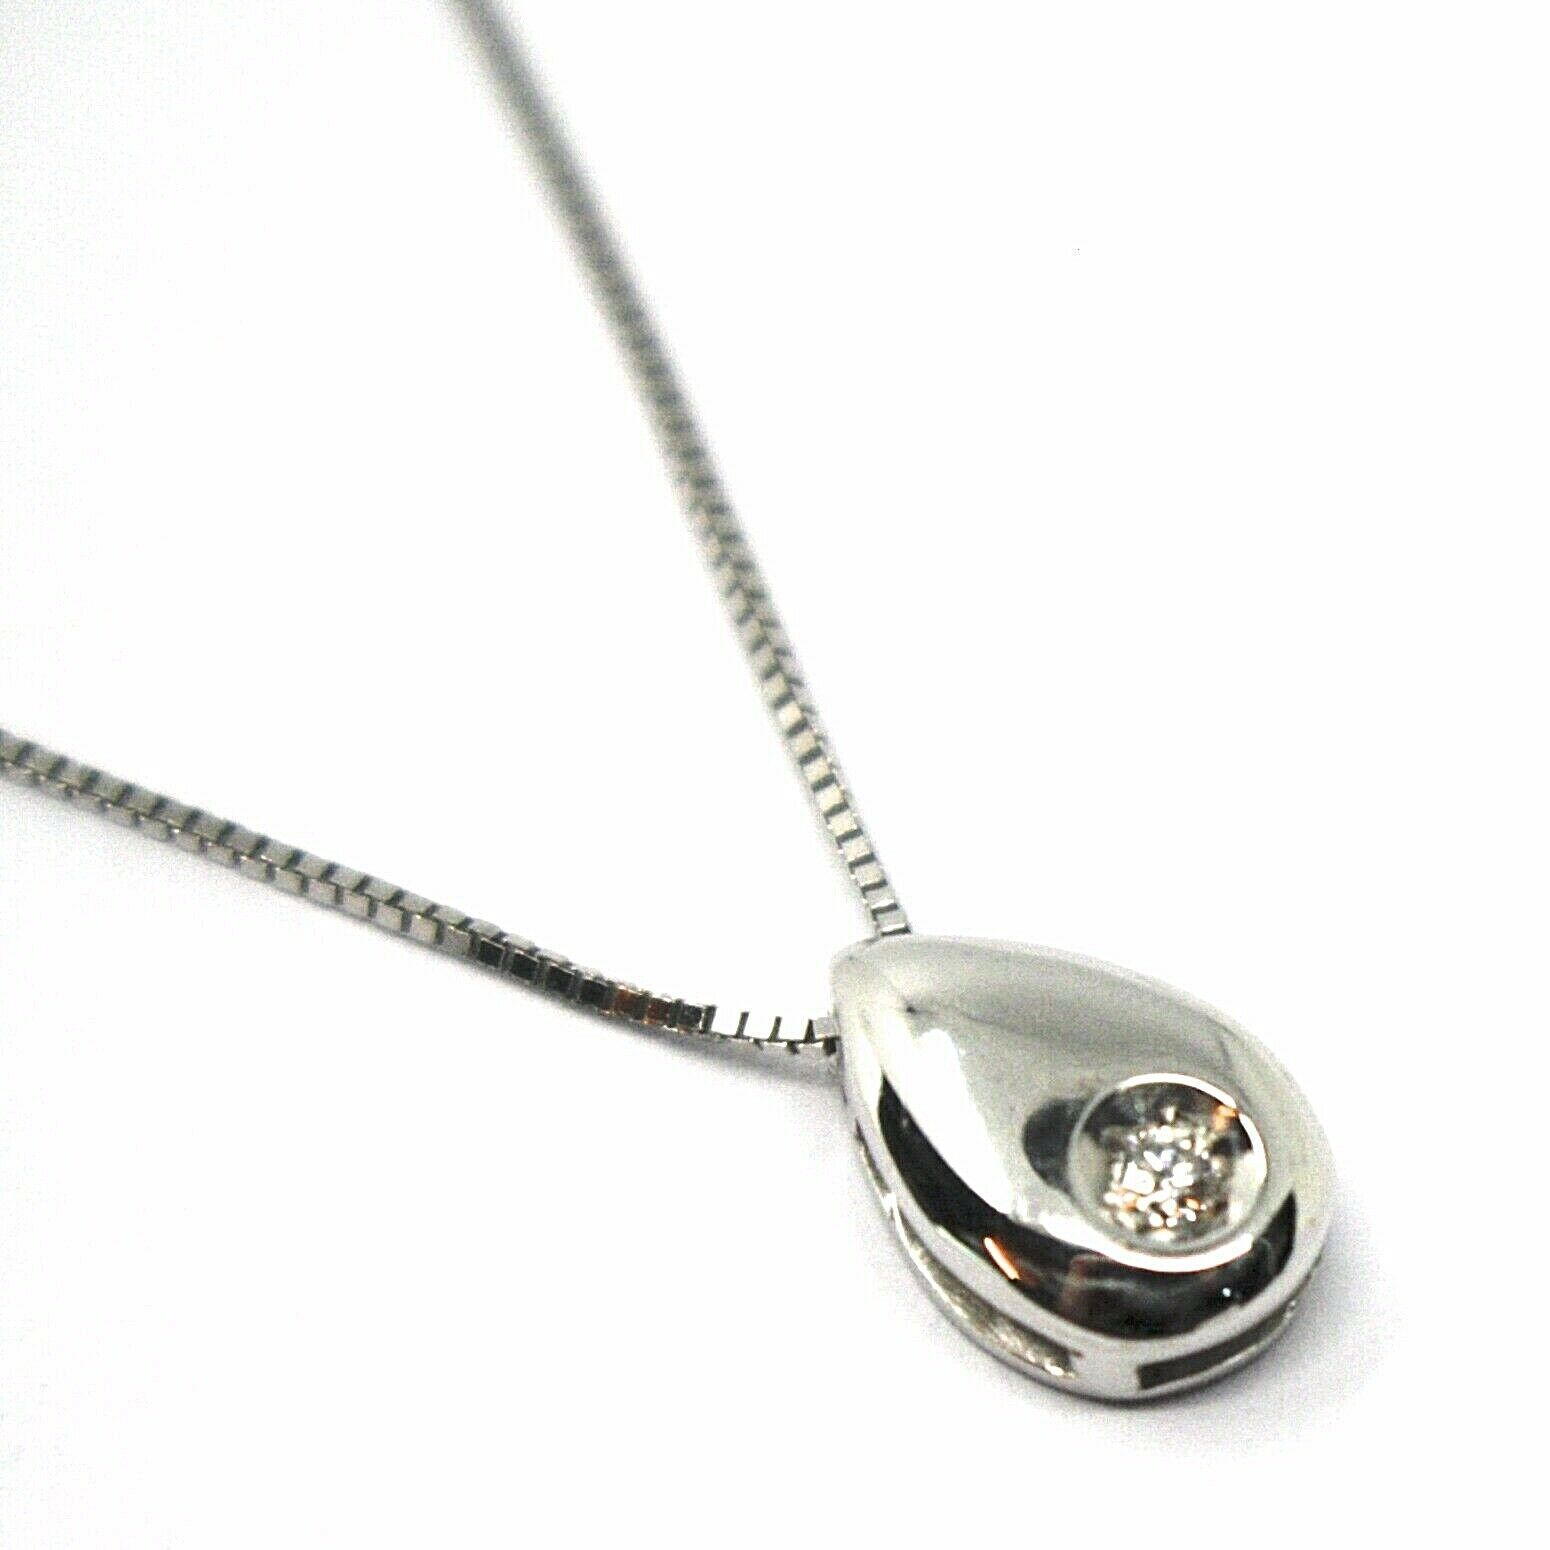 18K WHITE GOLD NECKLACE, DROP PENDANT WITH DIAMOND AND VENETIAN CHAIN